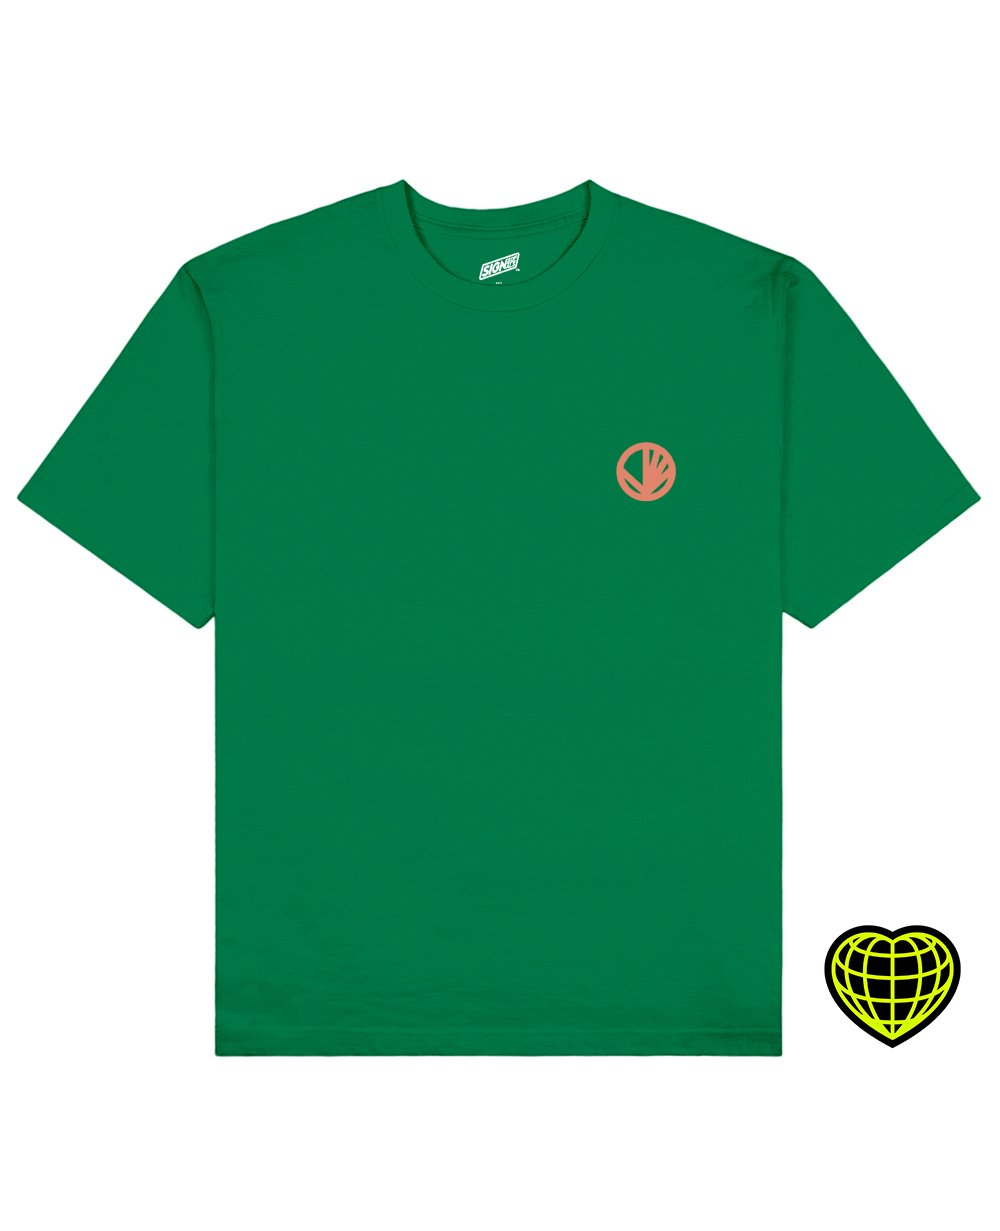 Circle with beams Print T-shirt in Green - T-Shirts - Signs of Signals - BRANMA